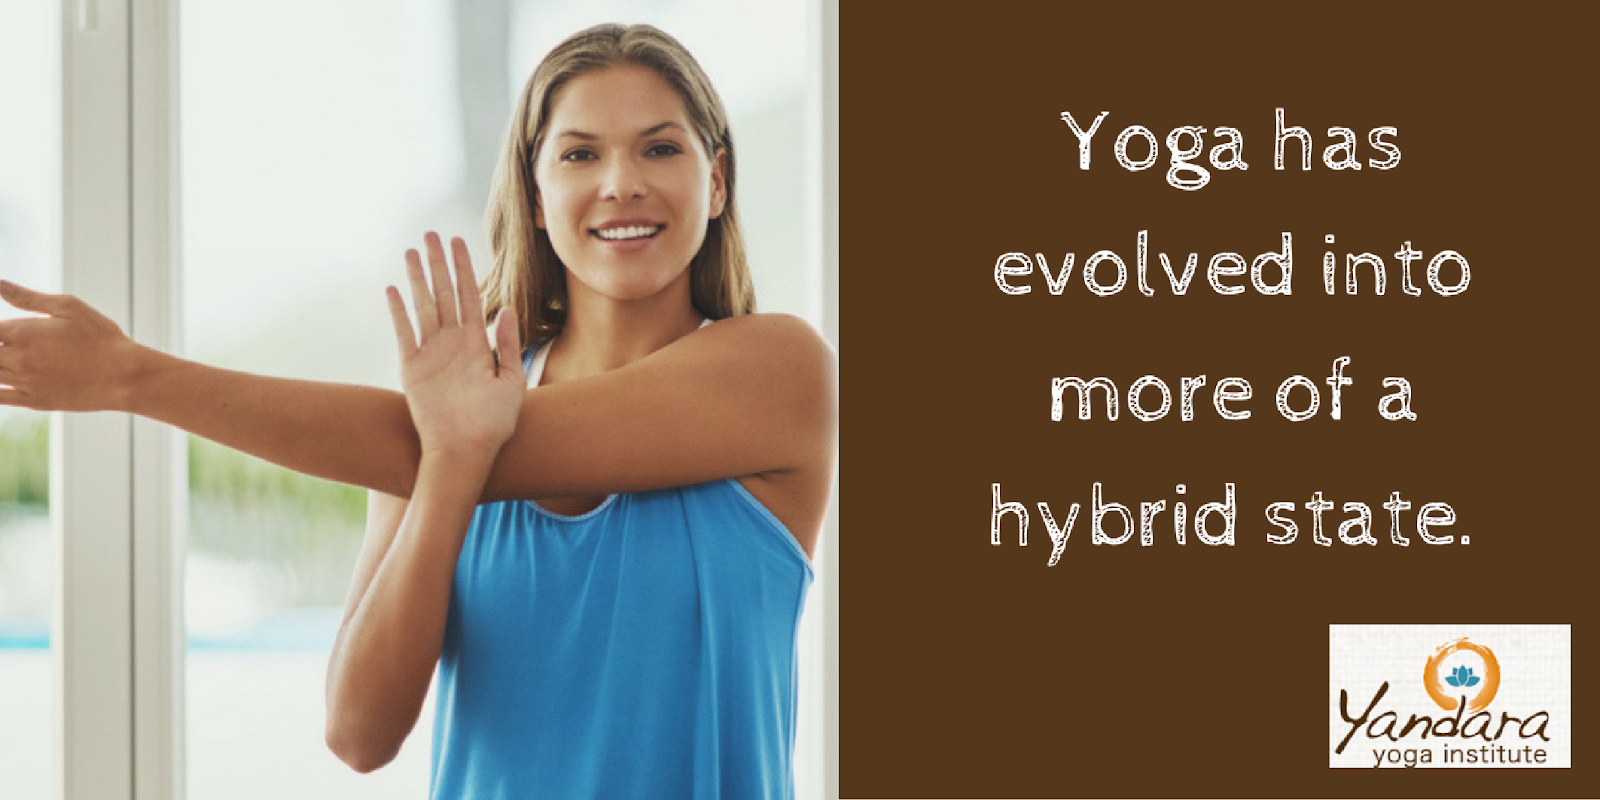 Yoga has evolved